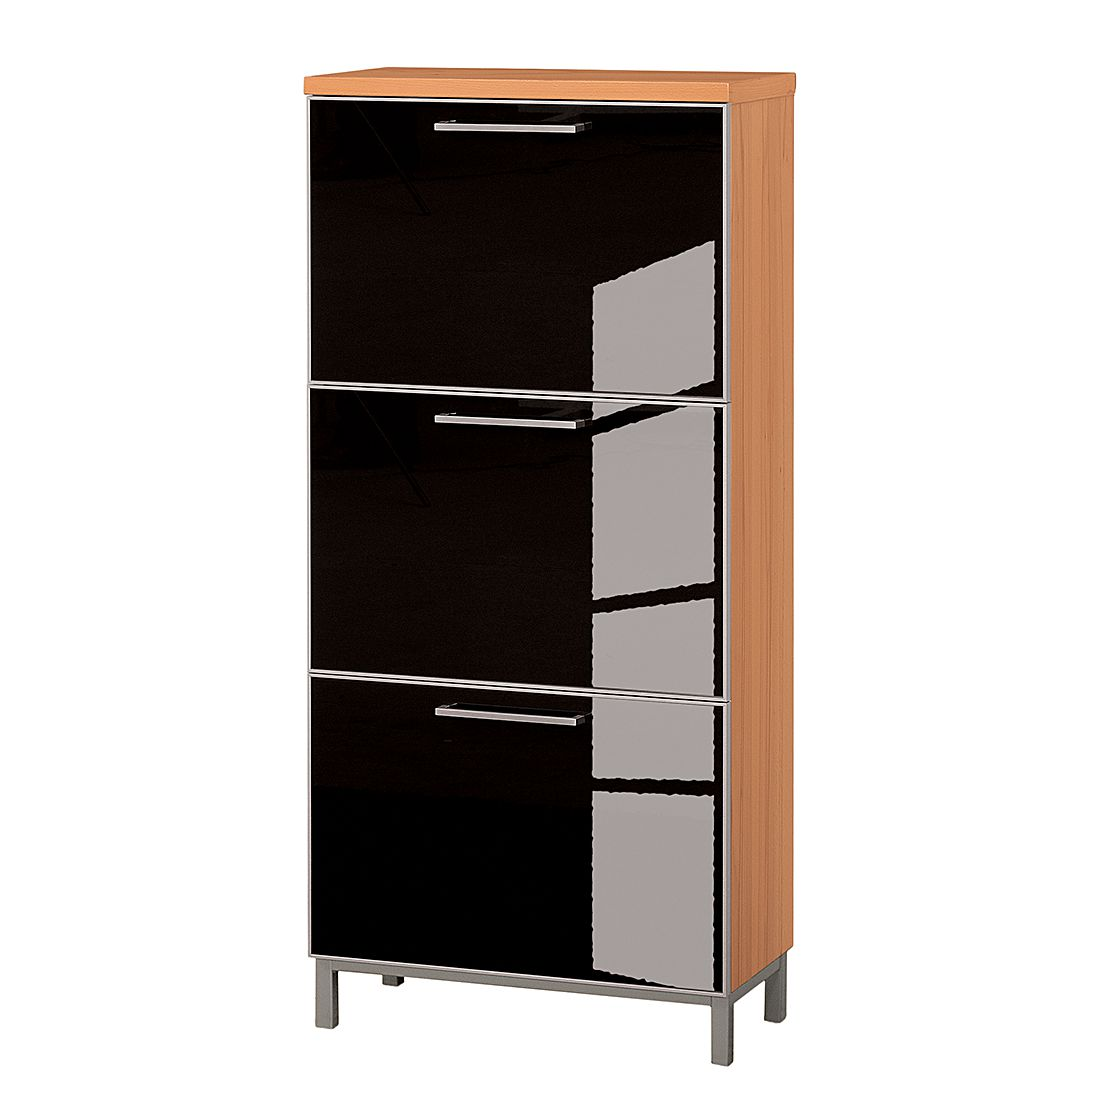 schuhschrank alves iv kernbuche glas anthrazit tiefe 30 cm f r. Black Bedroom Furniture Sets. Home Design Ideas